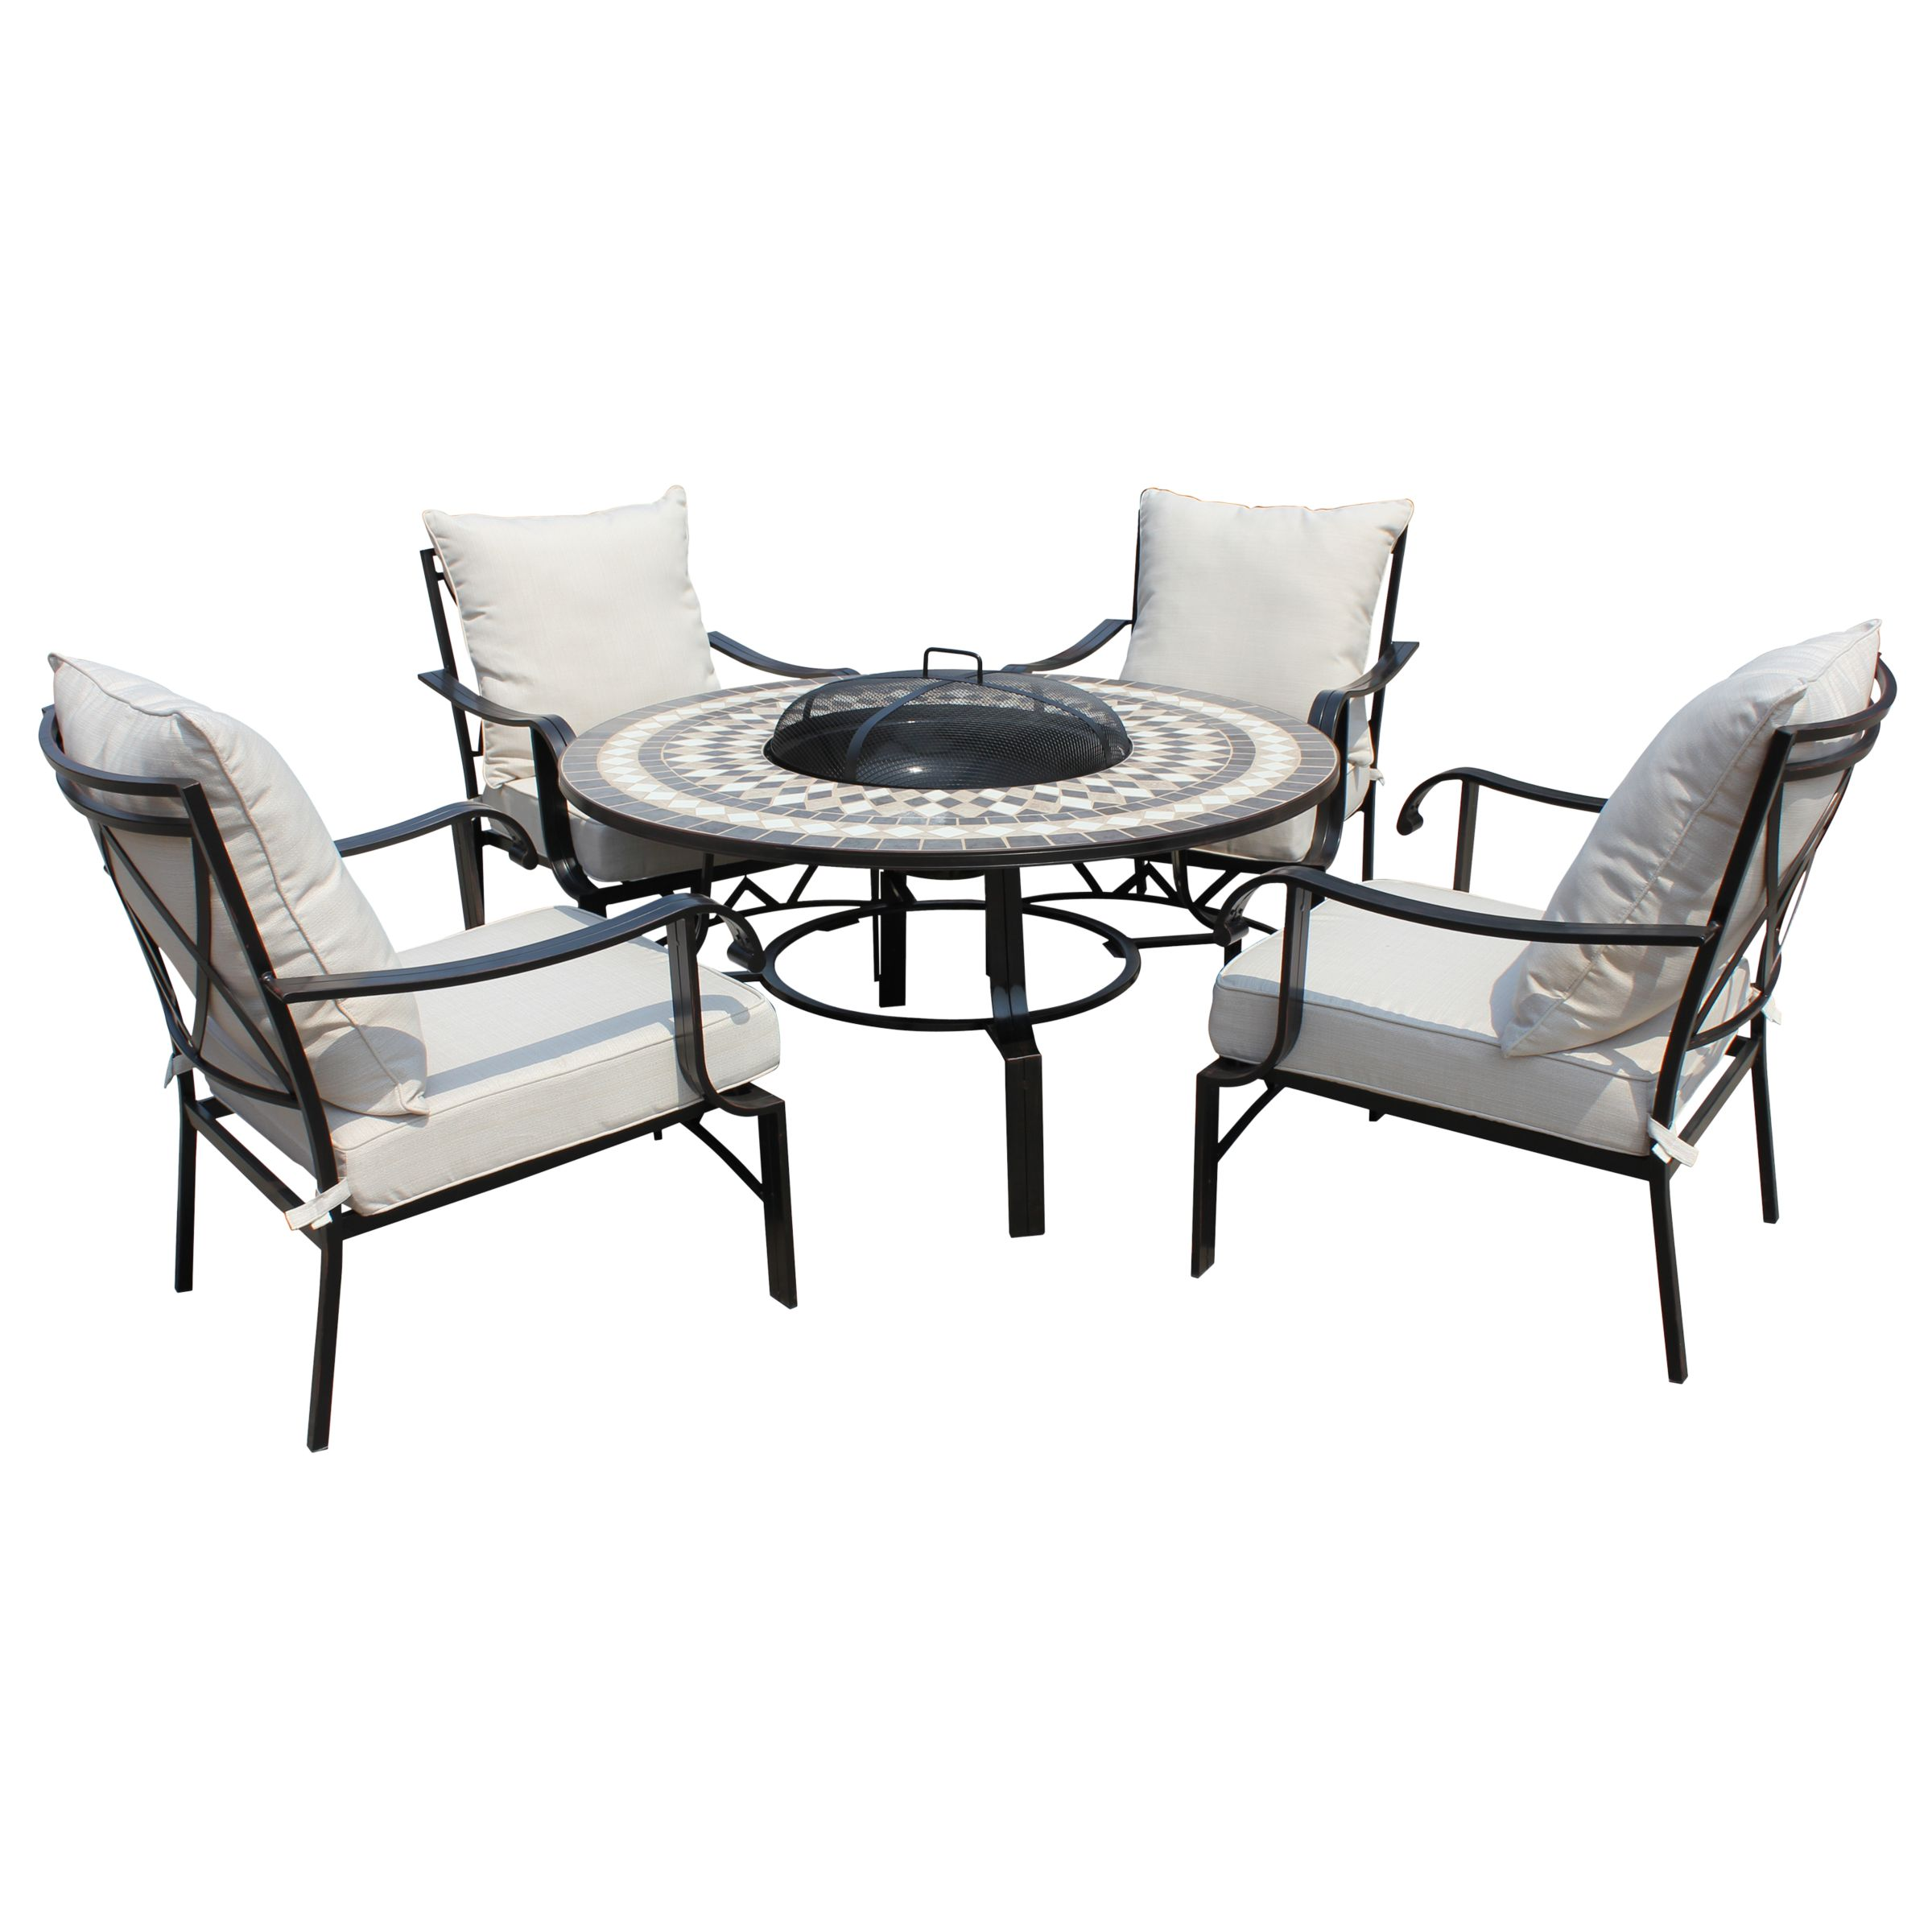 Image of: Lg Outdoor Casablanca 4 Seater Garden Round Table Lounging Set With Firepit Charcoal At John Lewis Partners